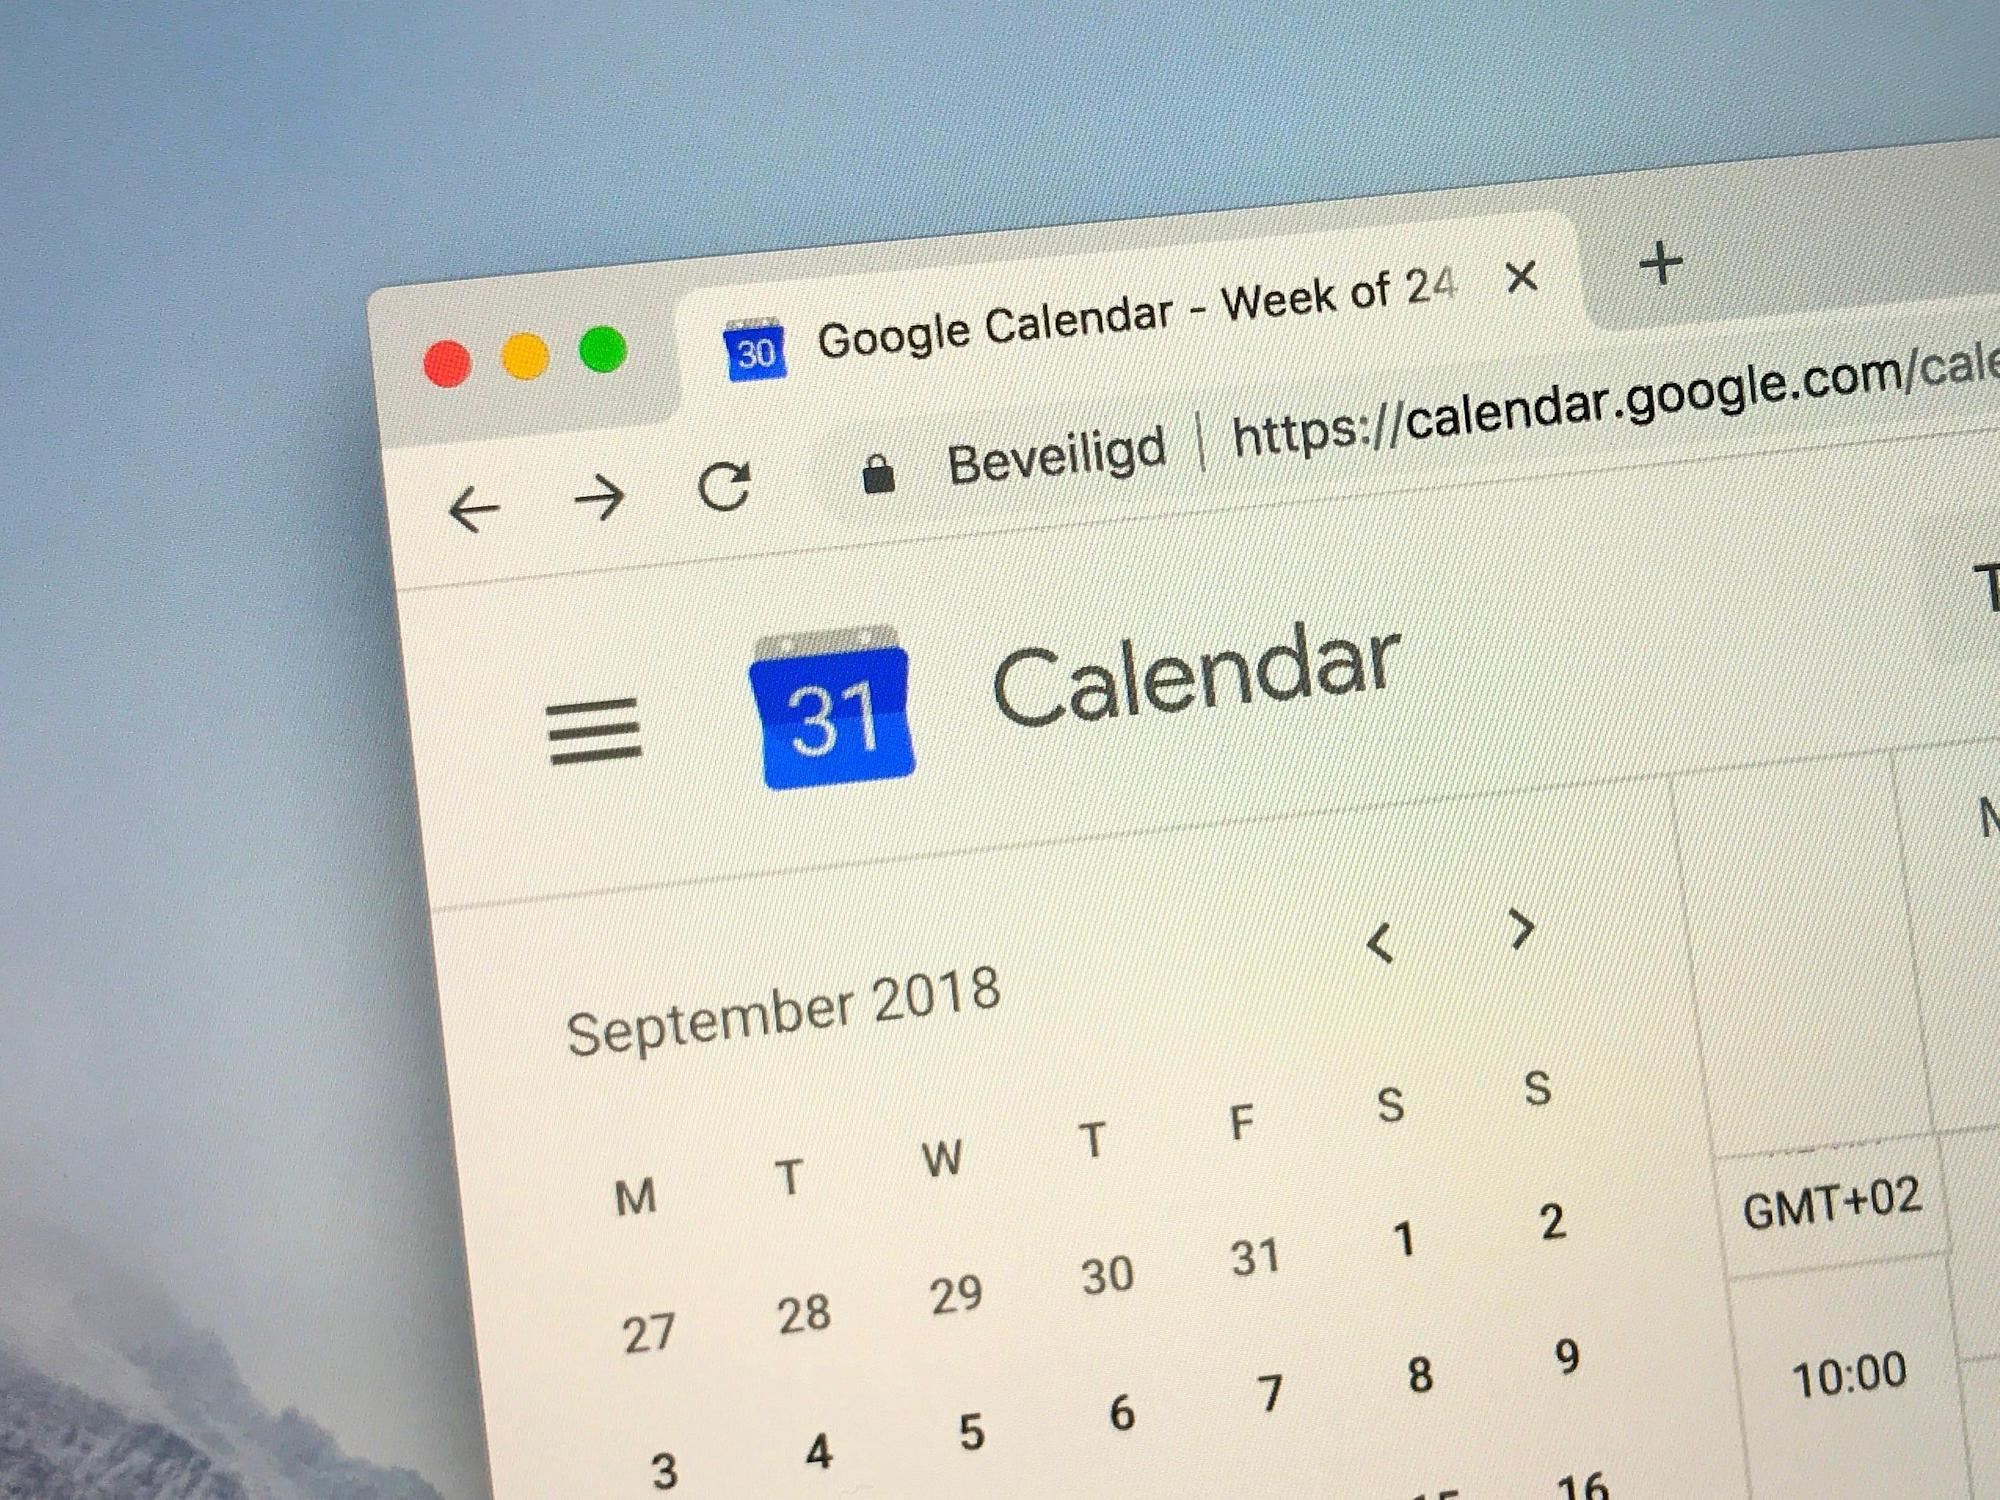 How to change the colors on your Google Calendar to differentiate your events and calendars